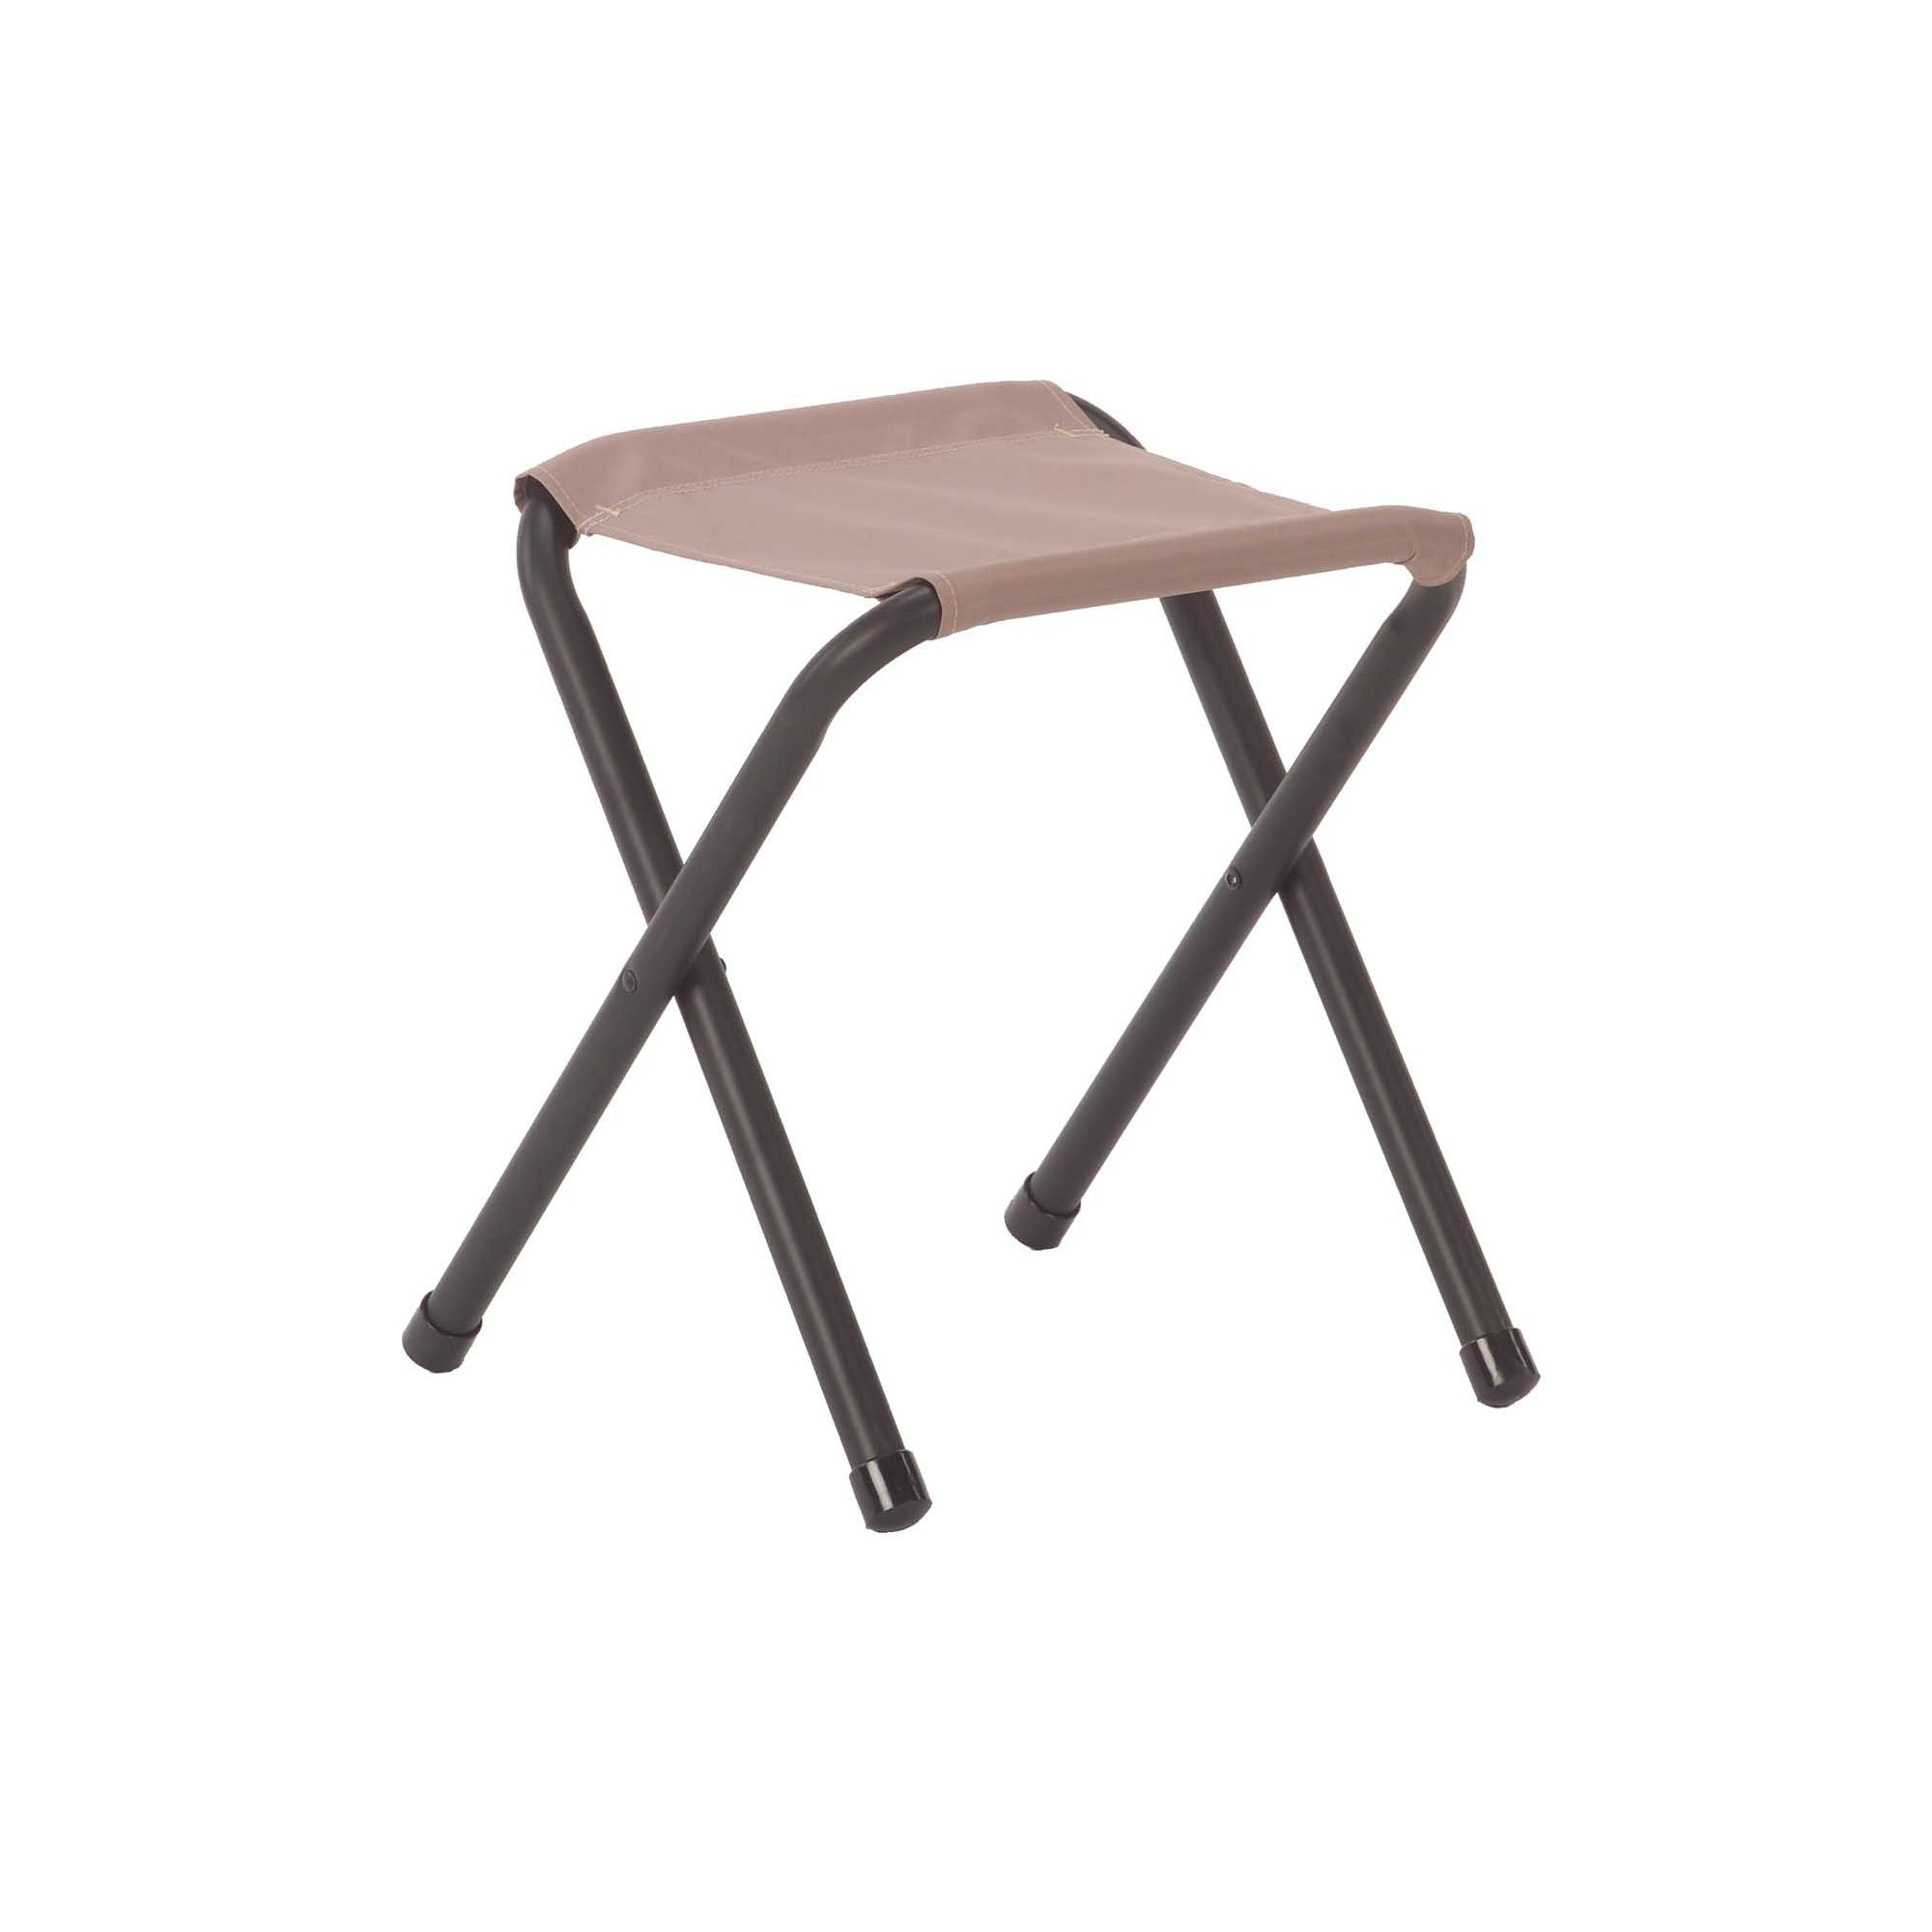 Marvelous Rambler Ii Stool Coleman Ocoug Best Dining Table And Chair Ideas Images Ocougorg